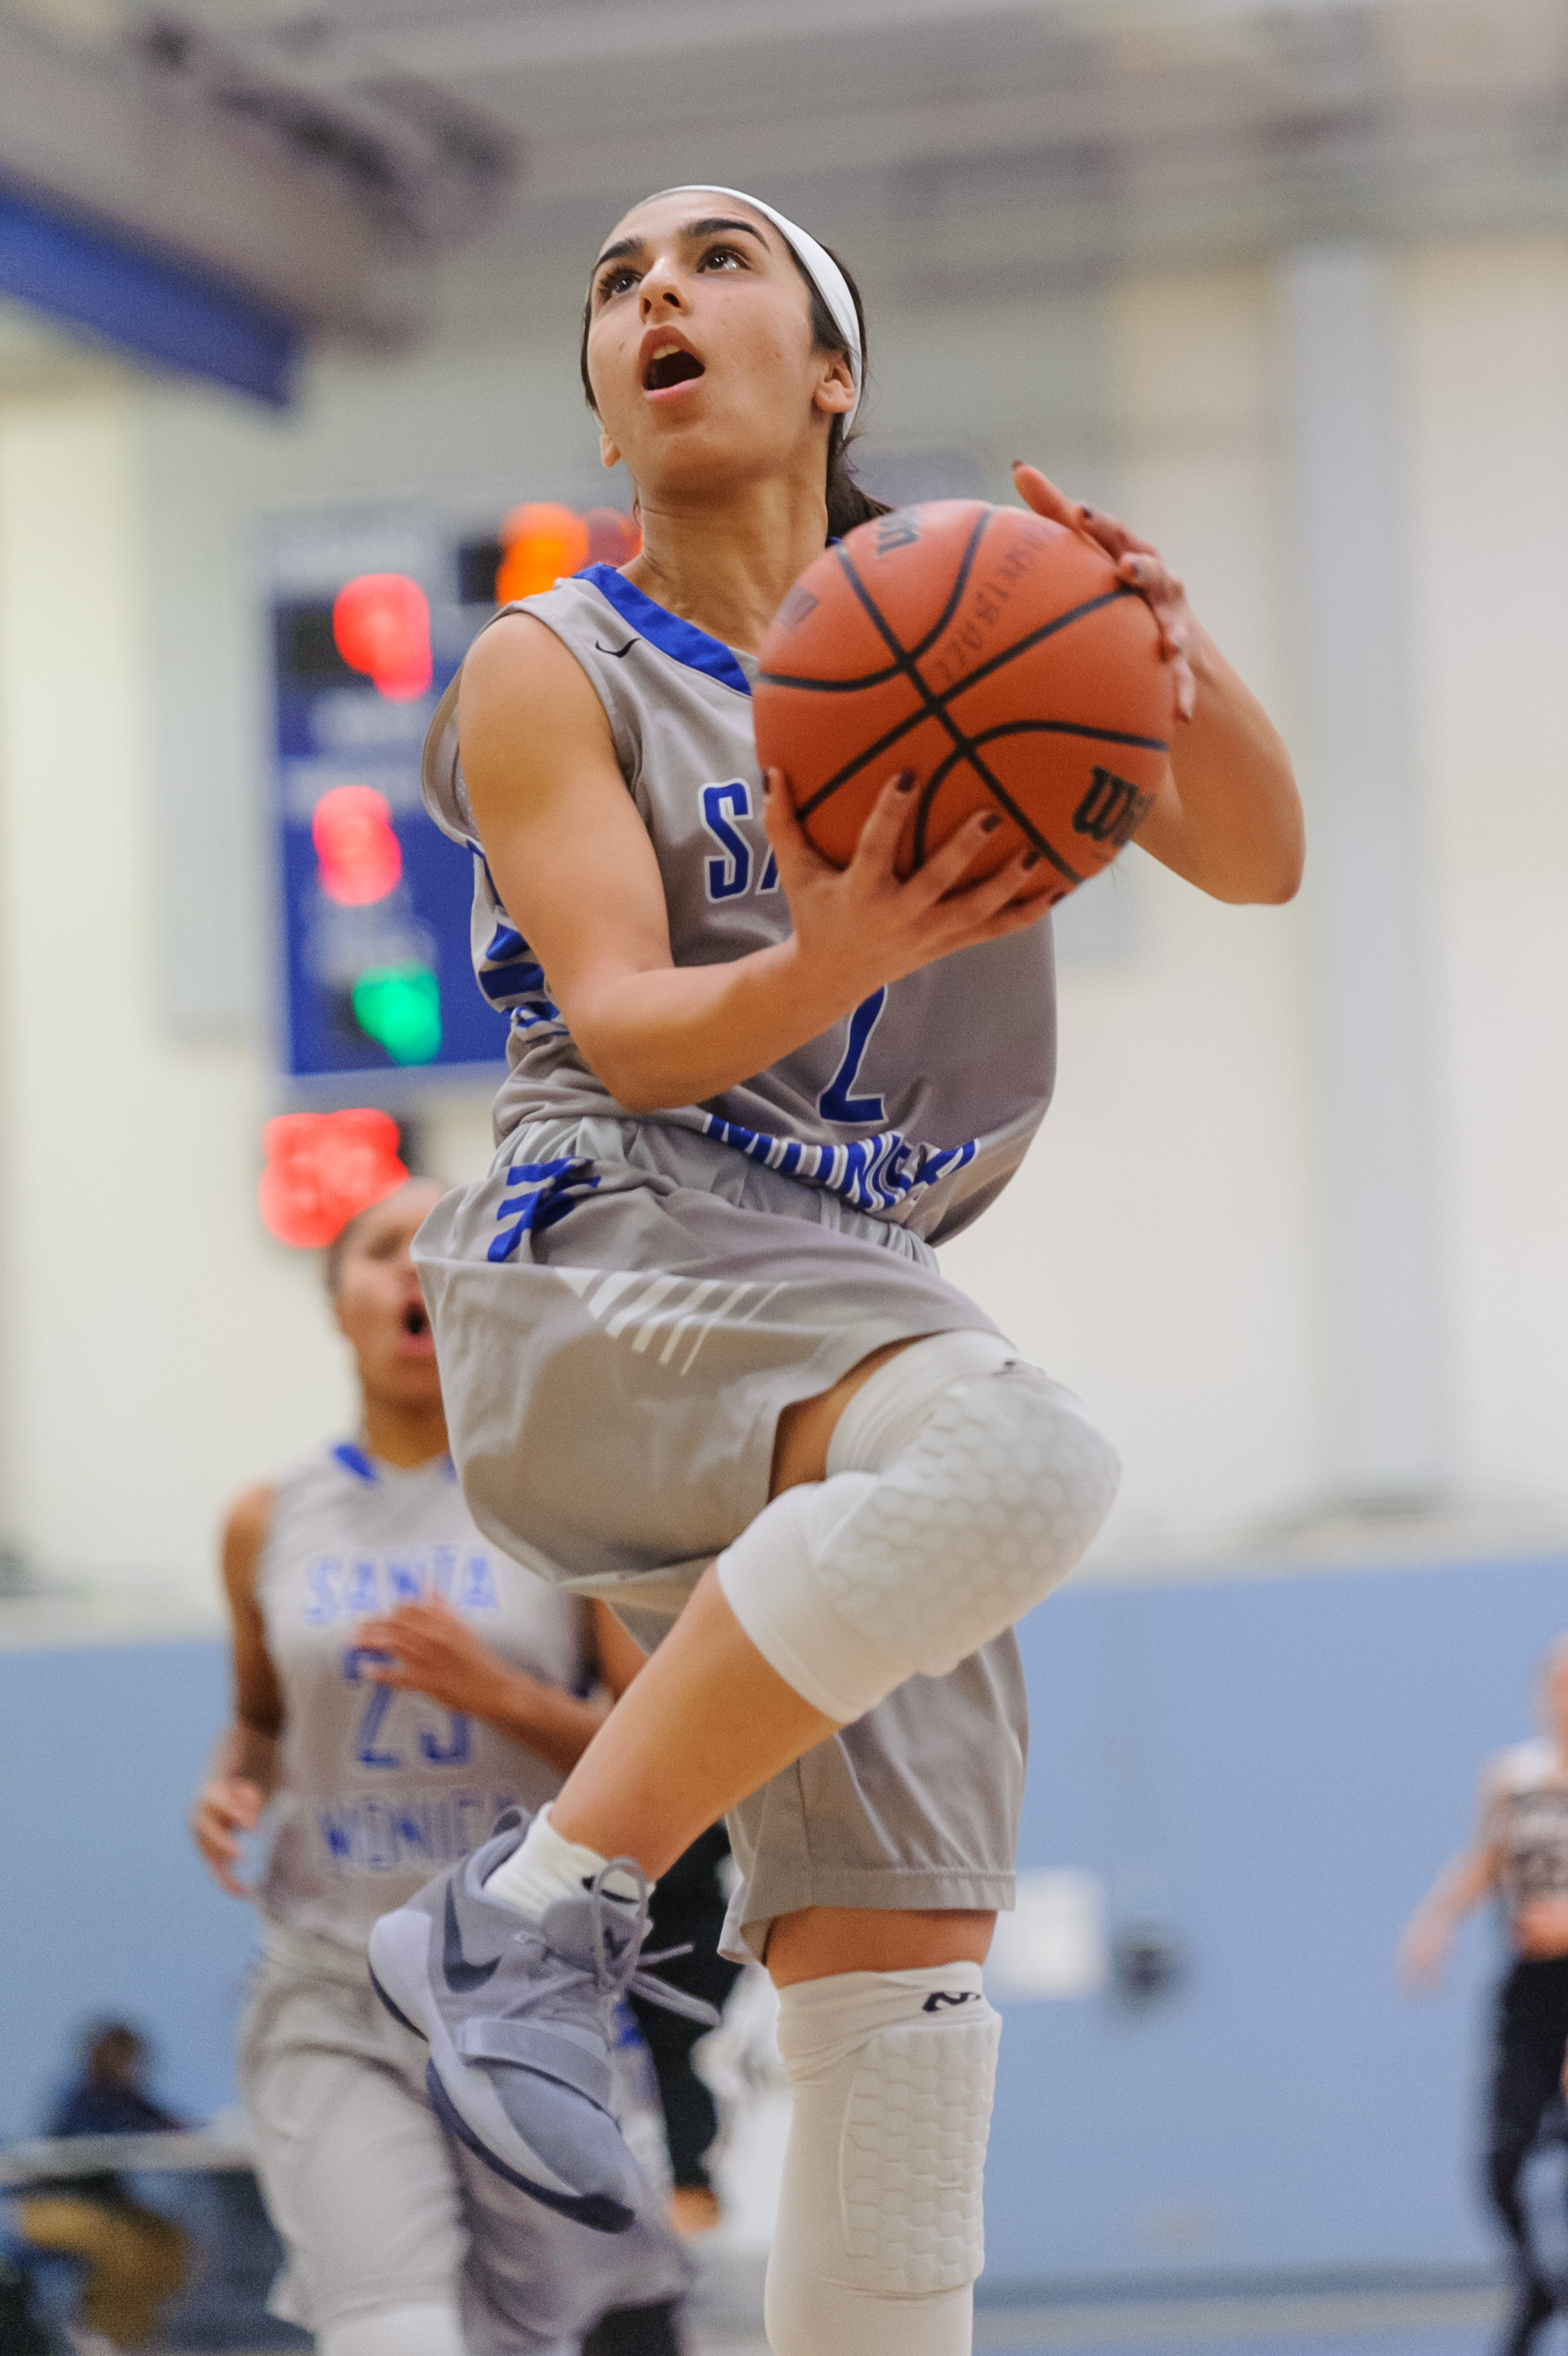 Guard Jessica Melamed (2) of Santa Monica College goes up for a reverse layup attempt. The Santa Monica College Corsairs win their final game of the season 76-53 against the Pierce College Brahmas. The game was held at the SMC Pavilion at the Santa Monica College Main Campus in Santa Monica, Calif.. February 17, 2018. (Photo by: Justin Han/Corsair Staff)